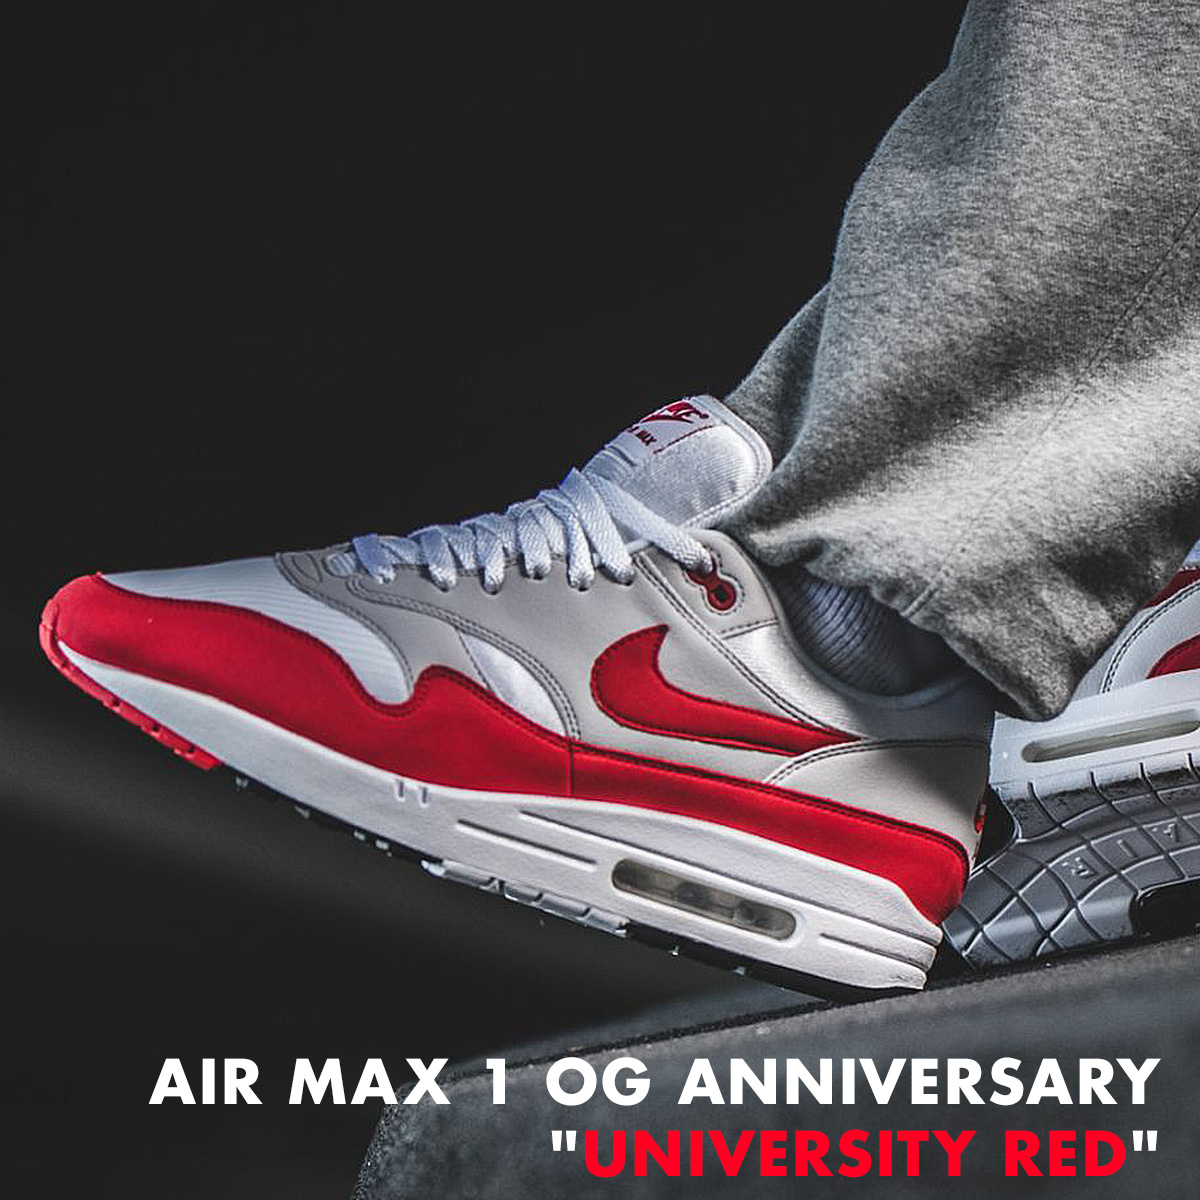 Anniversary Amax Planned In 908 Nike 375 Product Sneakers 29 Redload Men's Containing Kie Air 1 103 Shinnyu Max Reservation Load Ney ED2WIH9